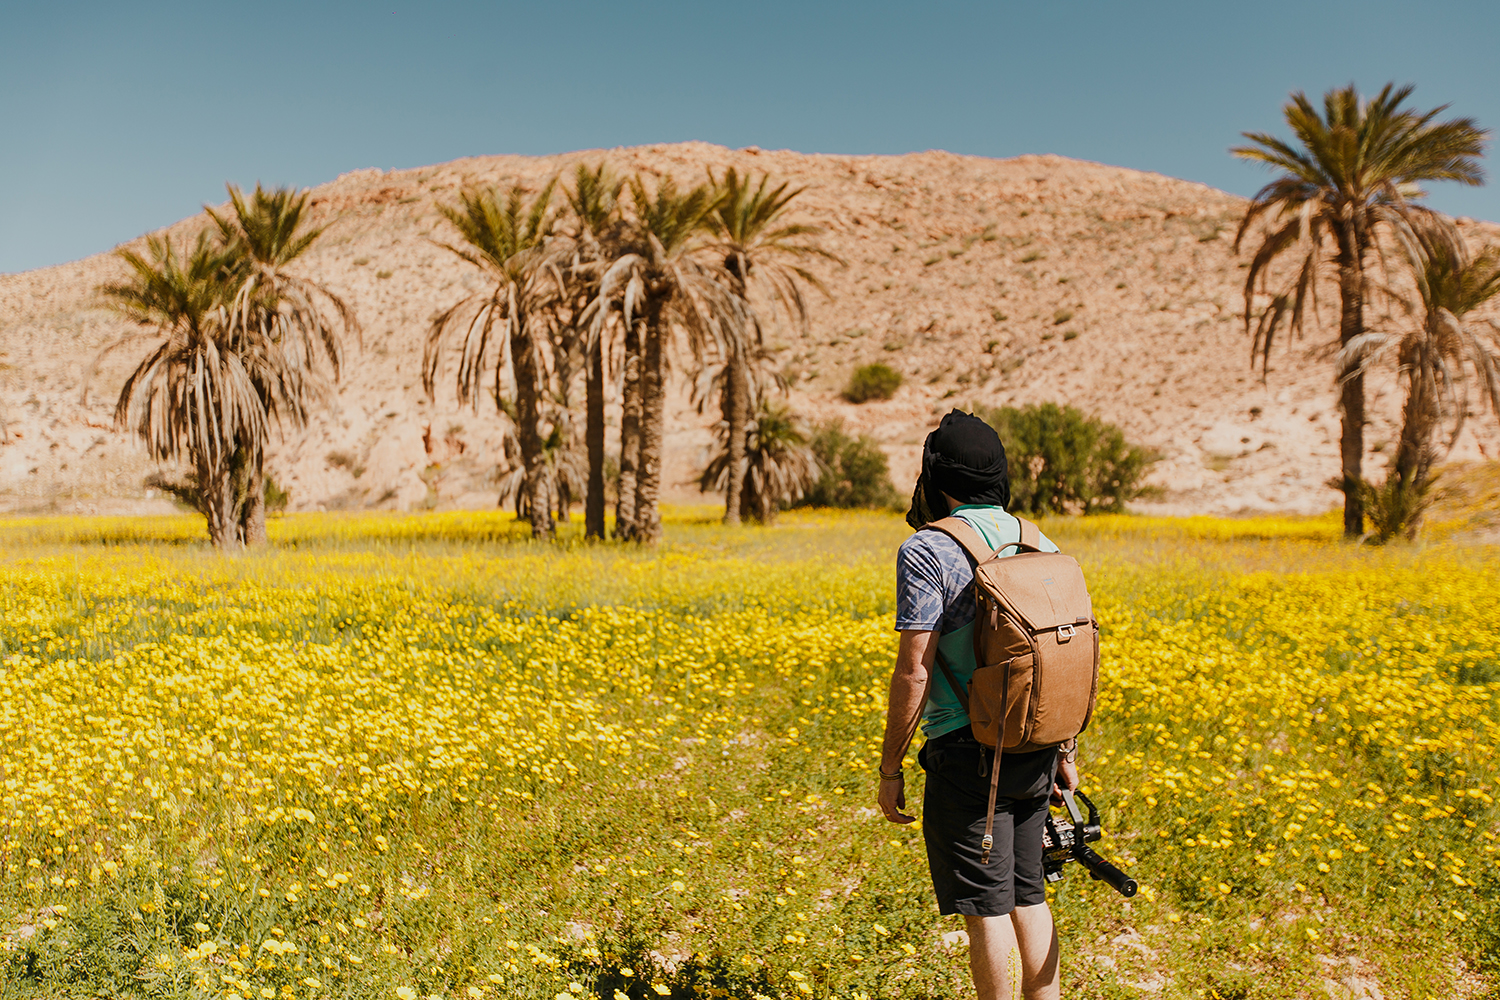 SN2_1517-sophie-narses-photographe-Tunisie-Voyage-book-shooting-geneve-mariage-suisse-famille-animaux-tirages-art-cours-photo-paysages-desert